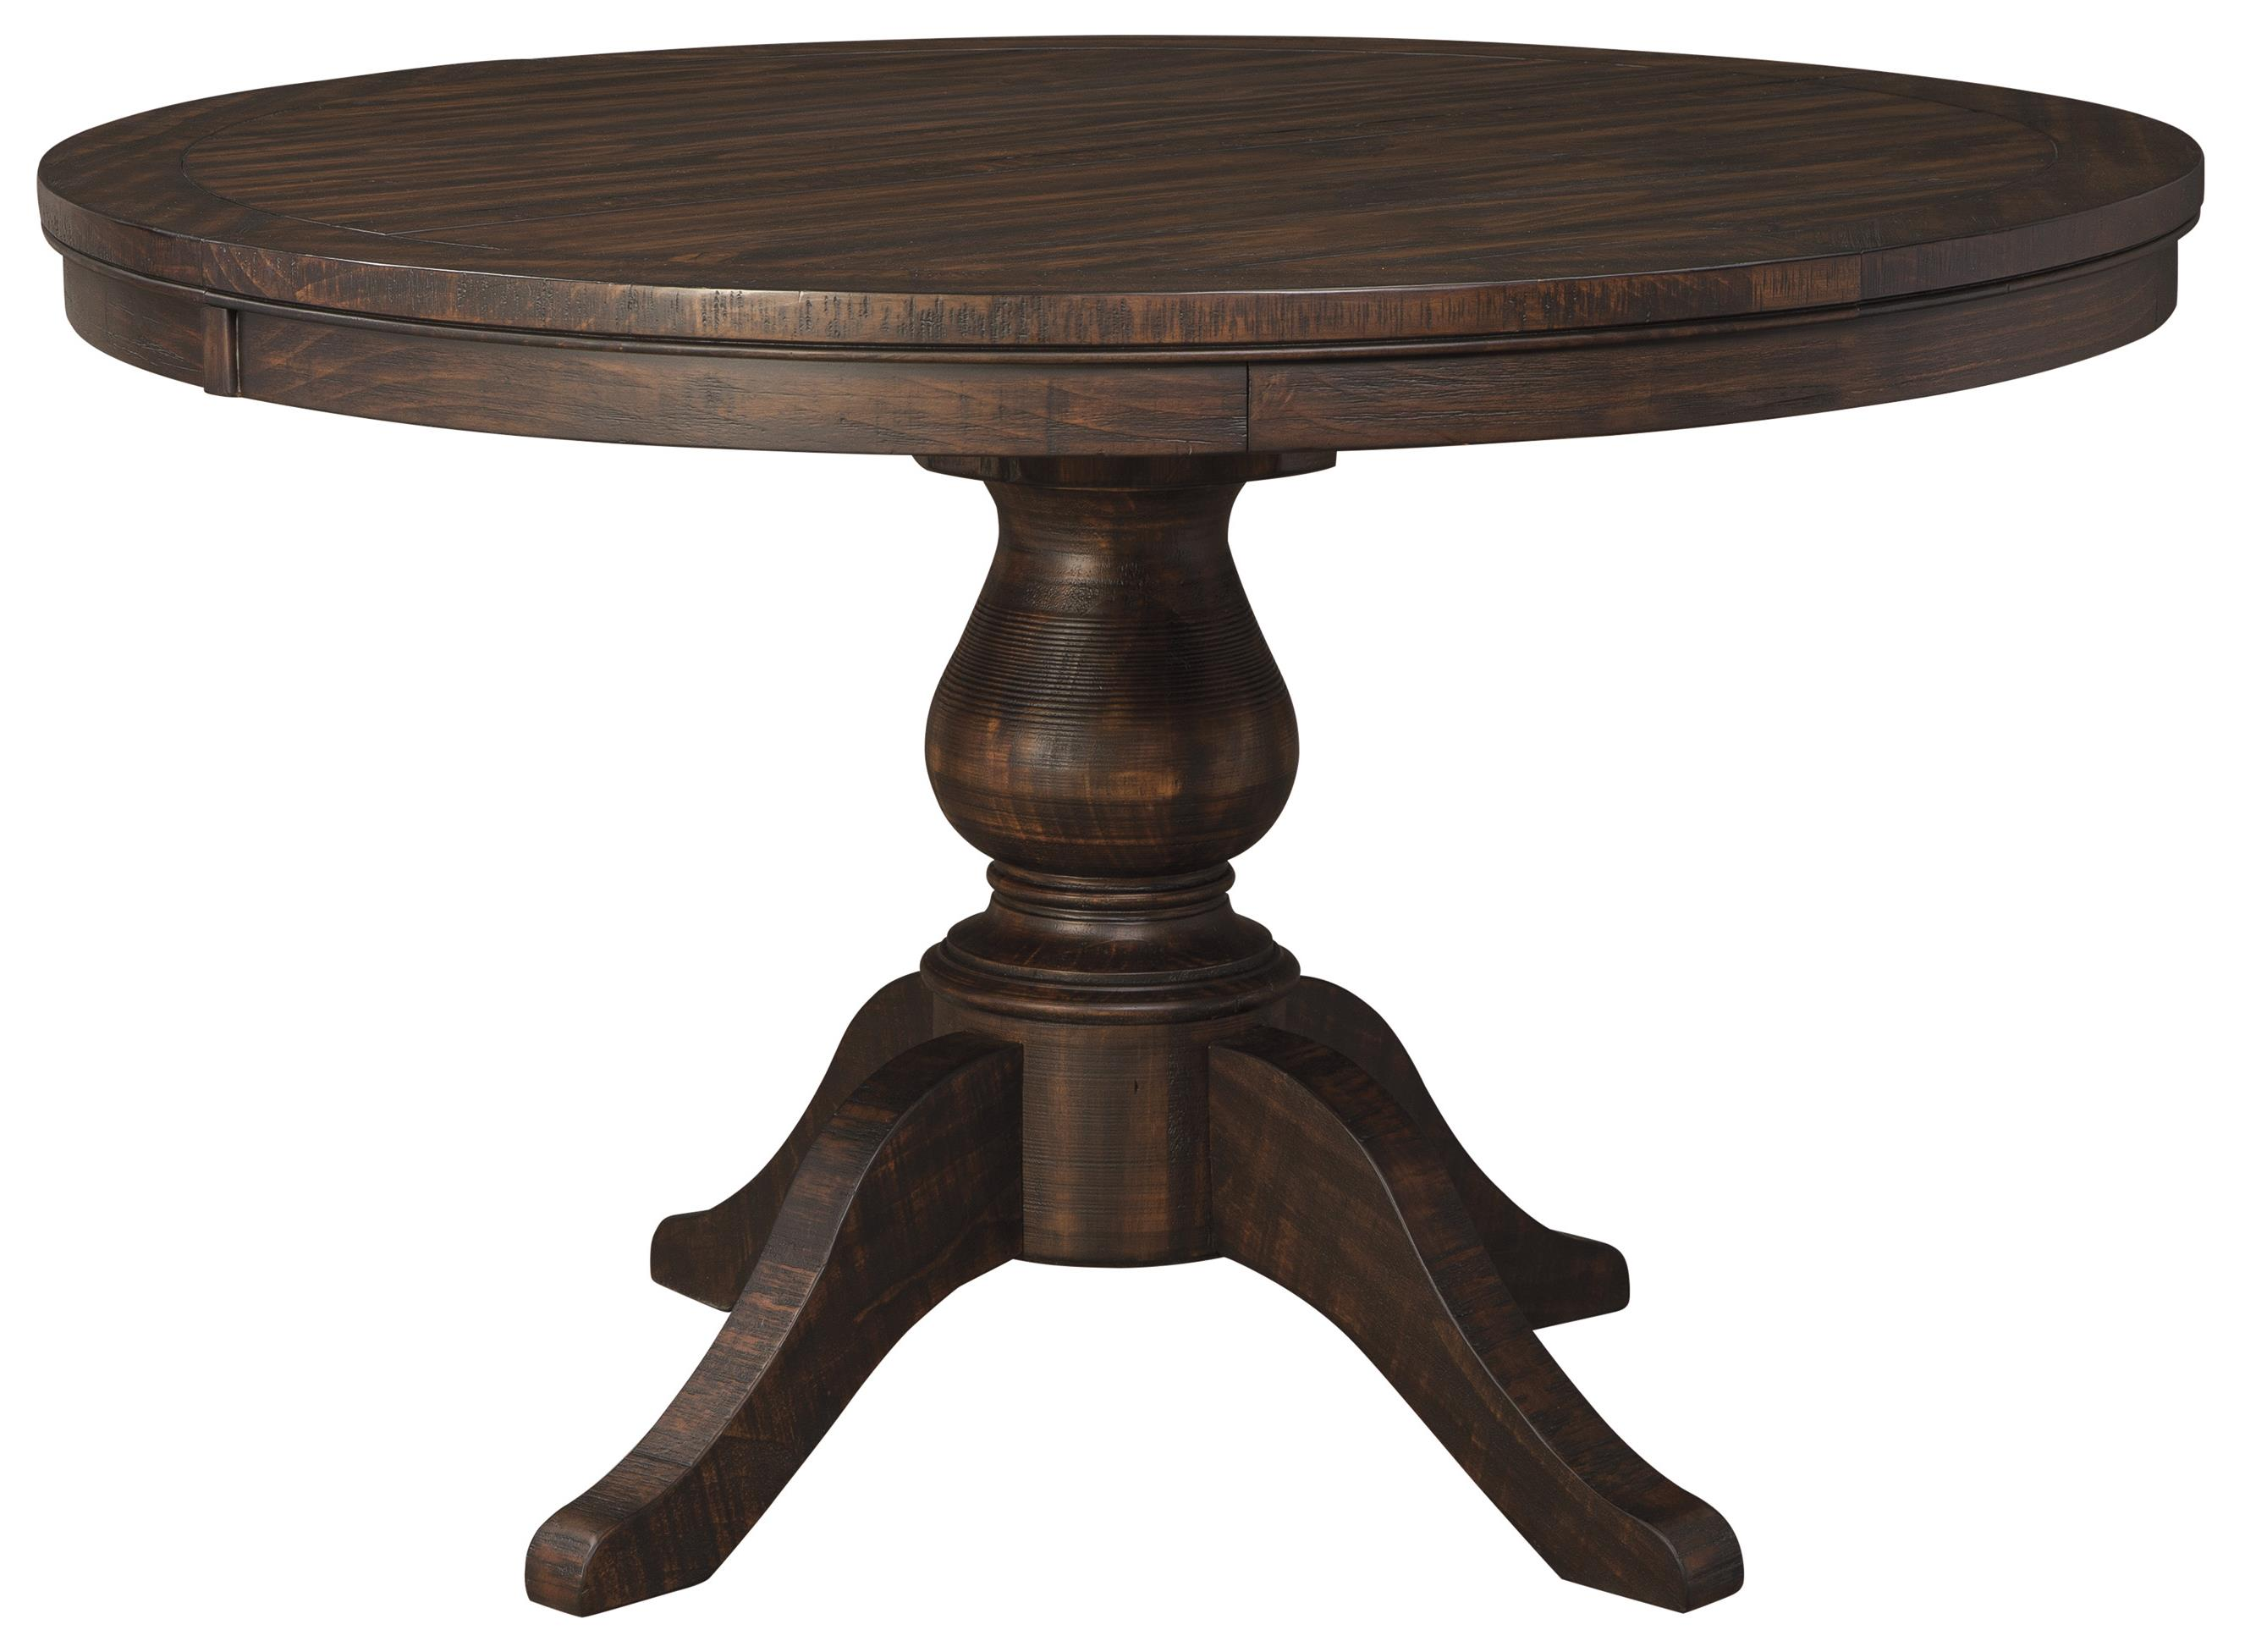 Solid wood pine round dining room pedestal extension table for Round extension dining table